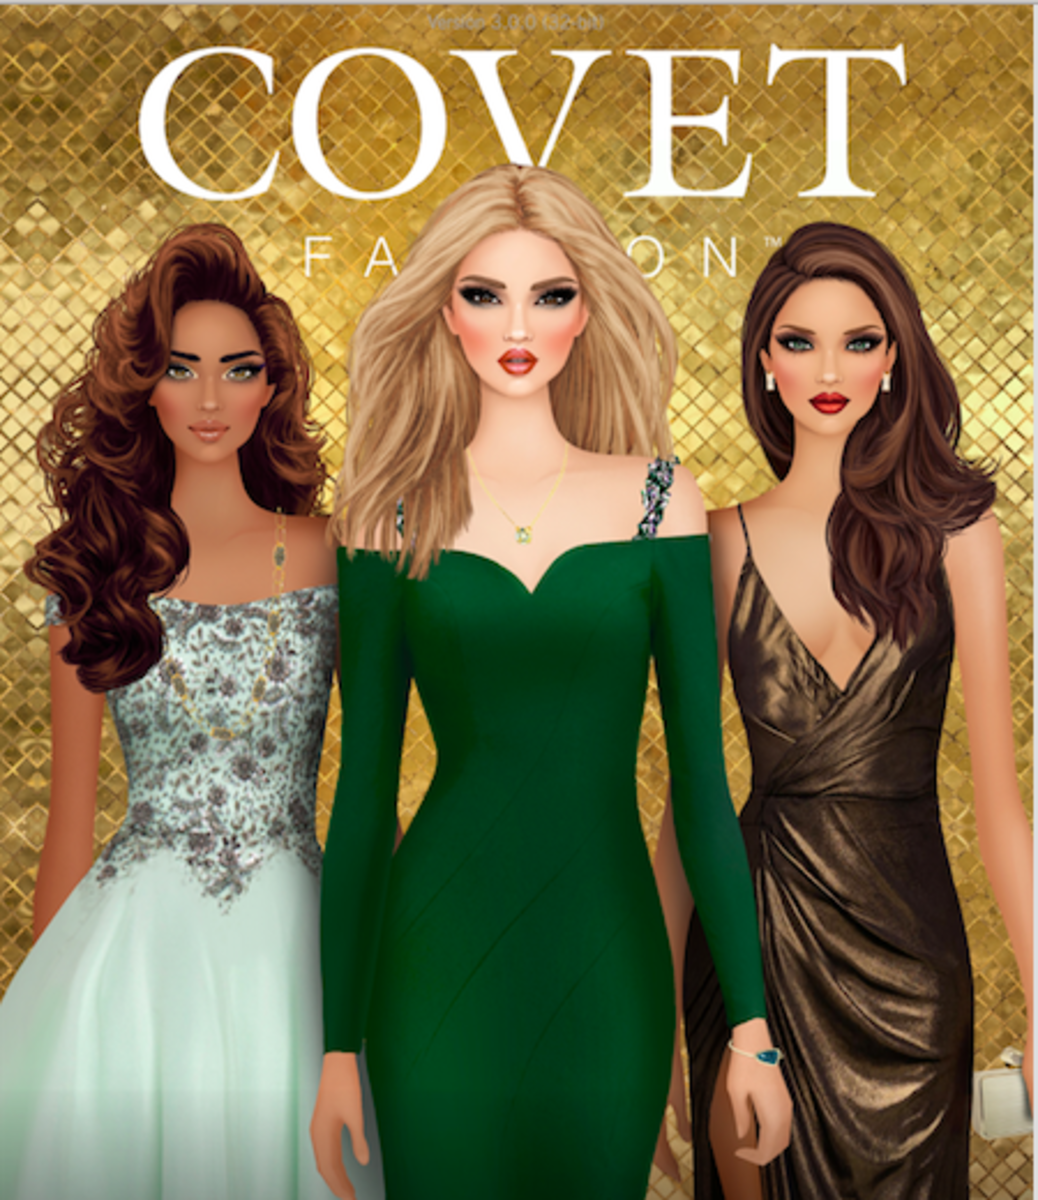 Tips and Tricks for Playing the Covet Fashion Game